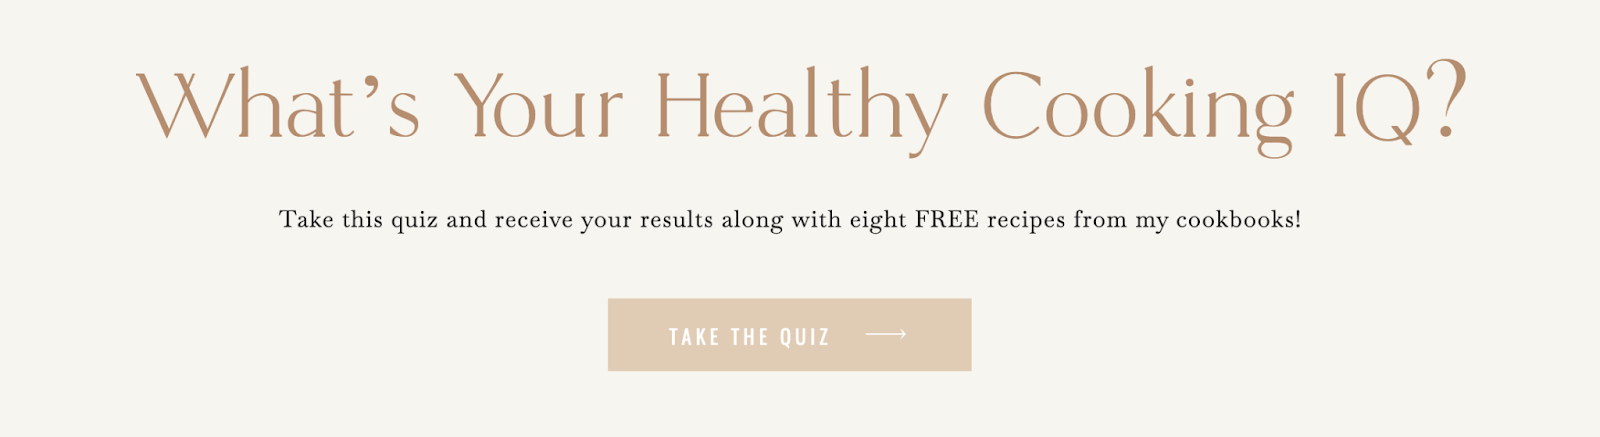 what's your healthy cooking IQ quiz cover